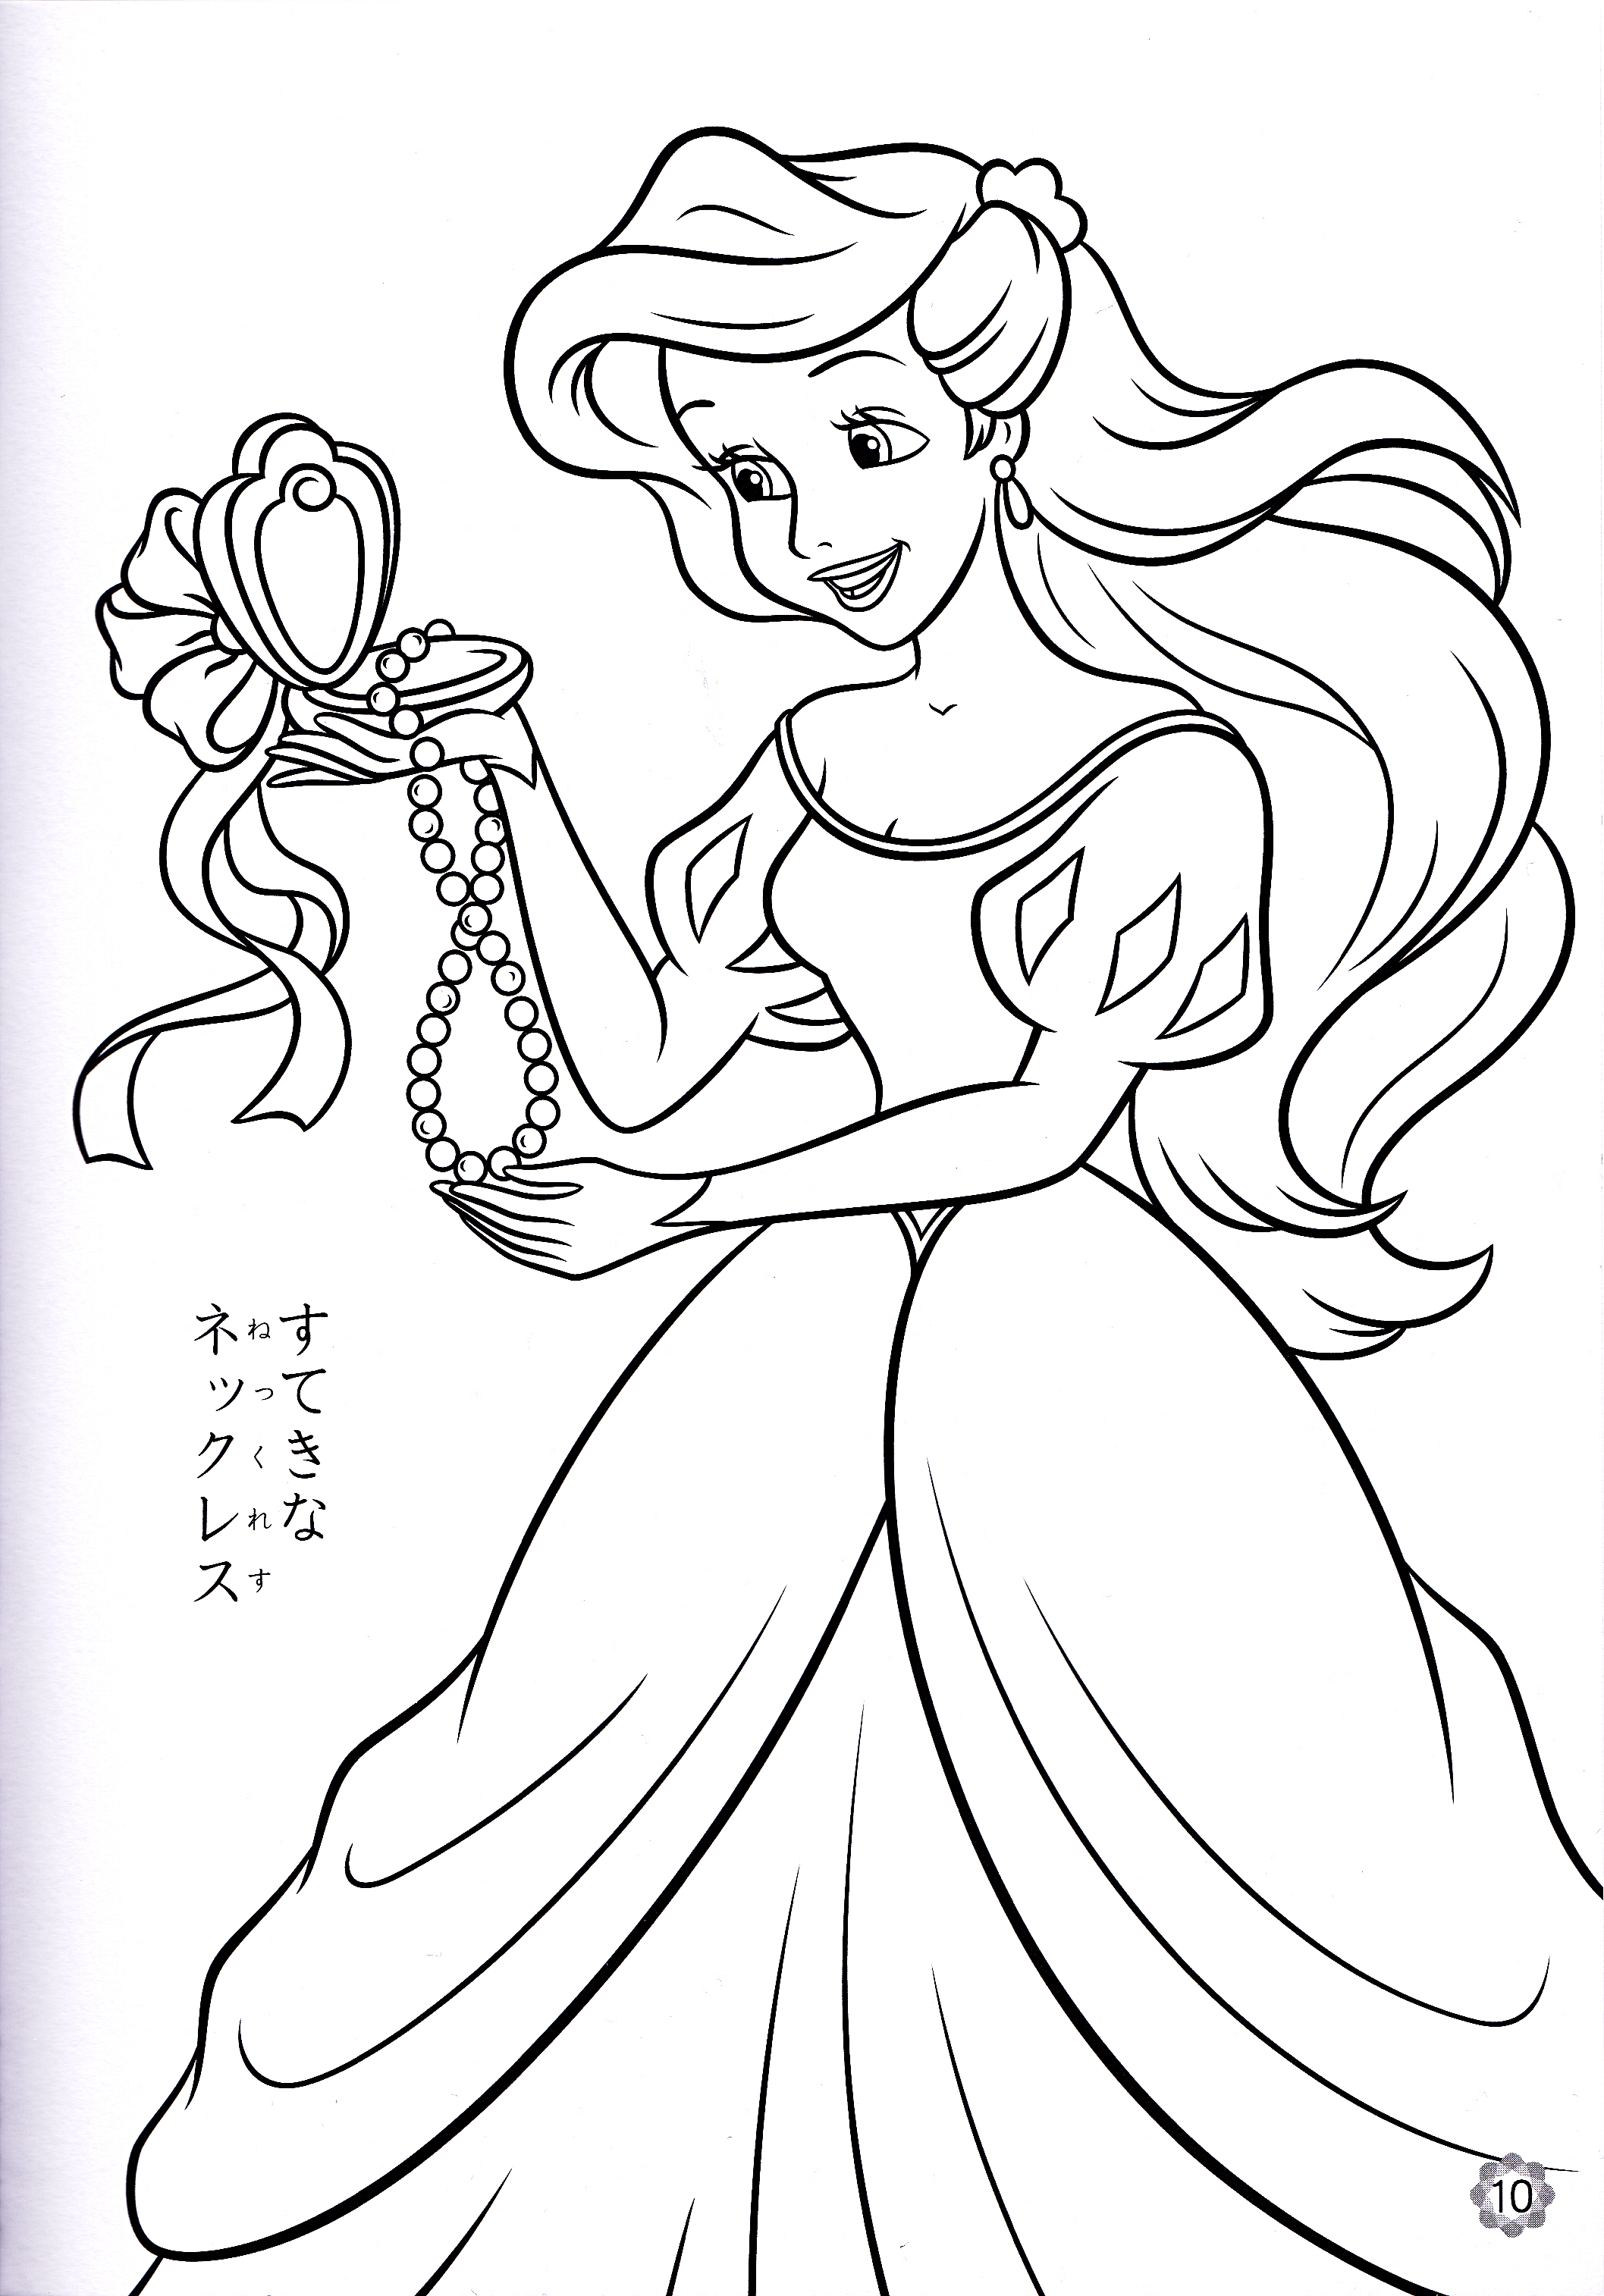 Free Printable Disney Princess Coloring Pages For Kids Colouring In Pages Disney